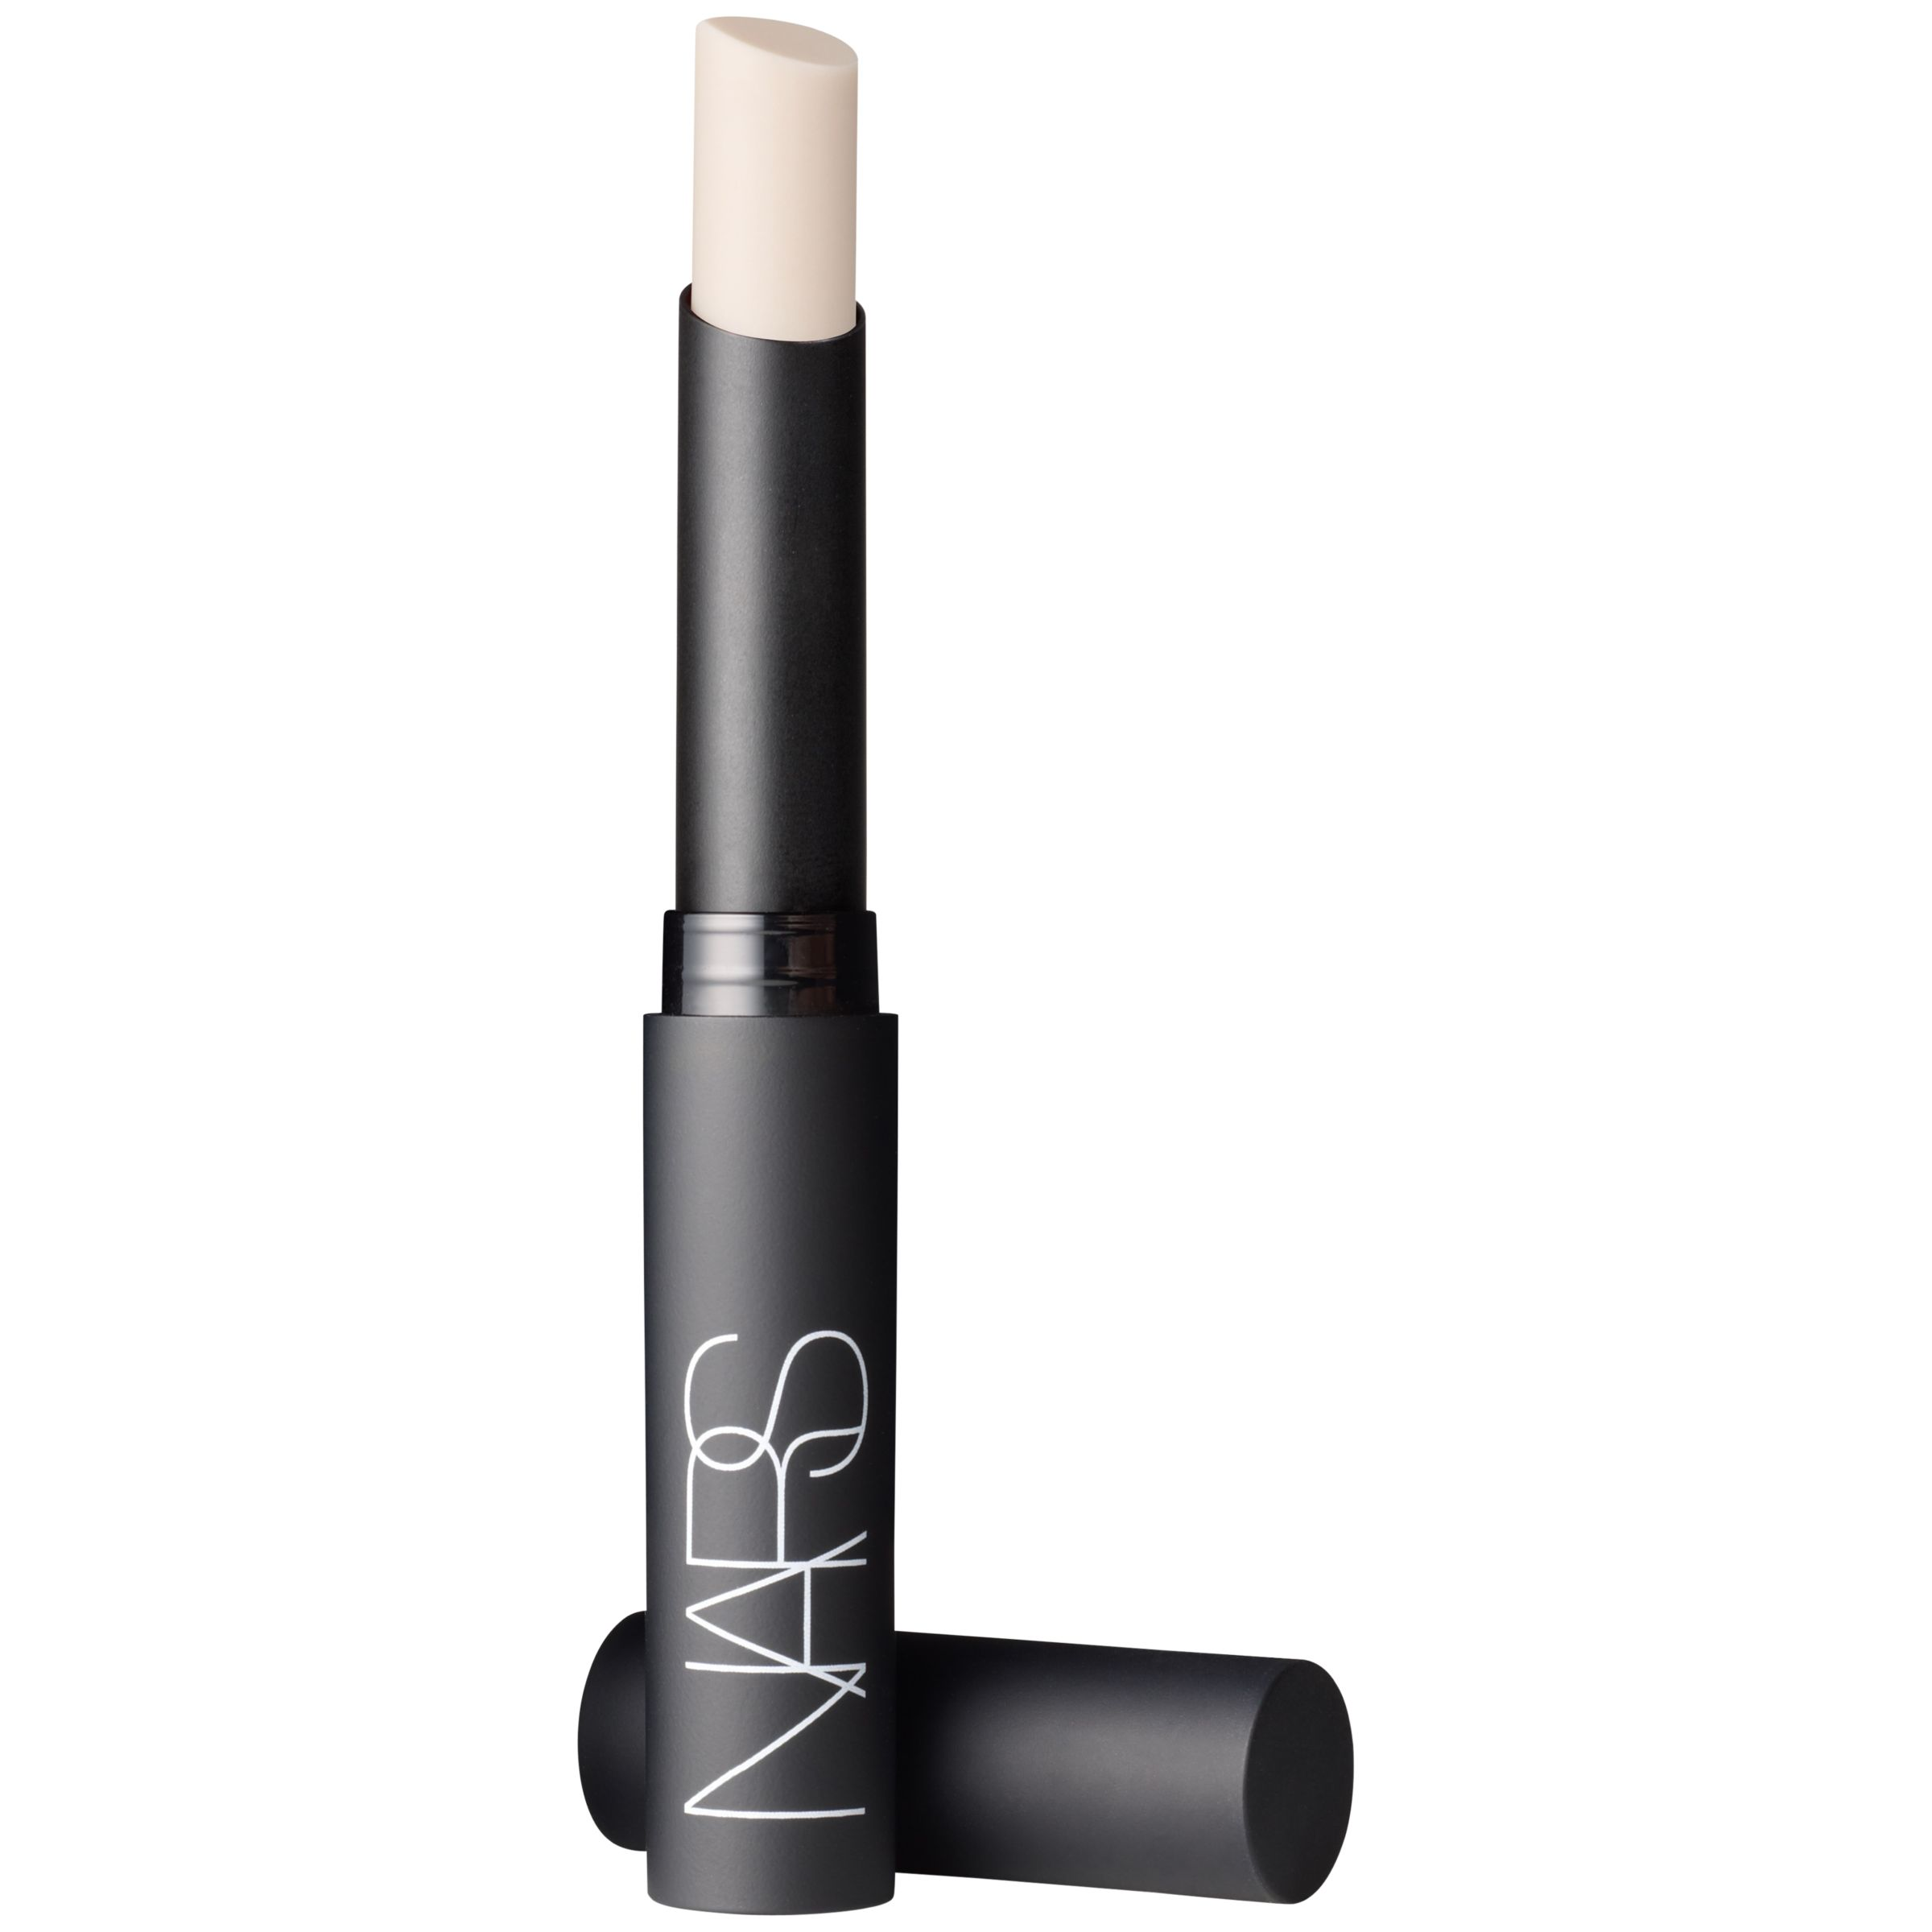 NARS NARS Pure Sheer SPF Lip Treatment, Bianca